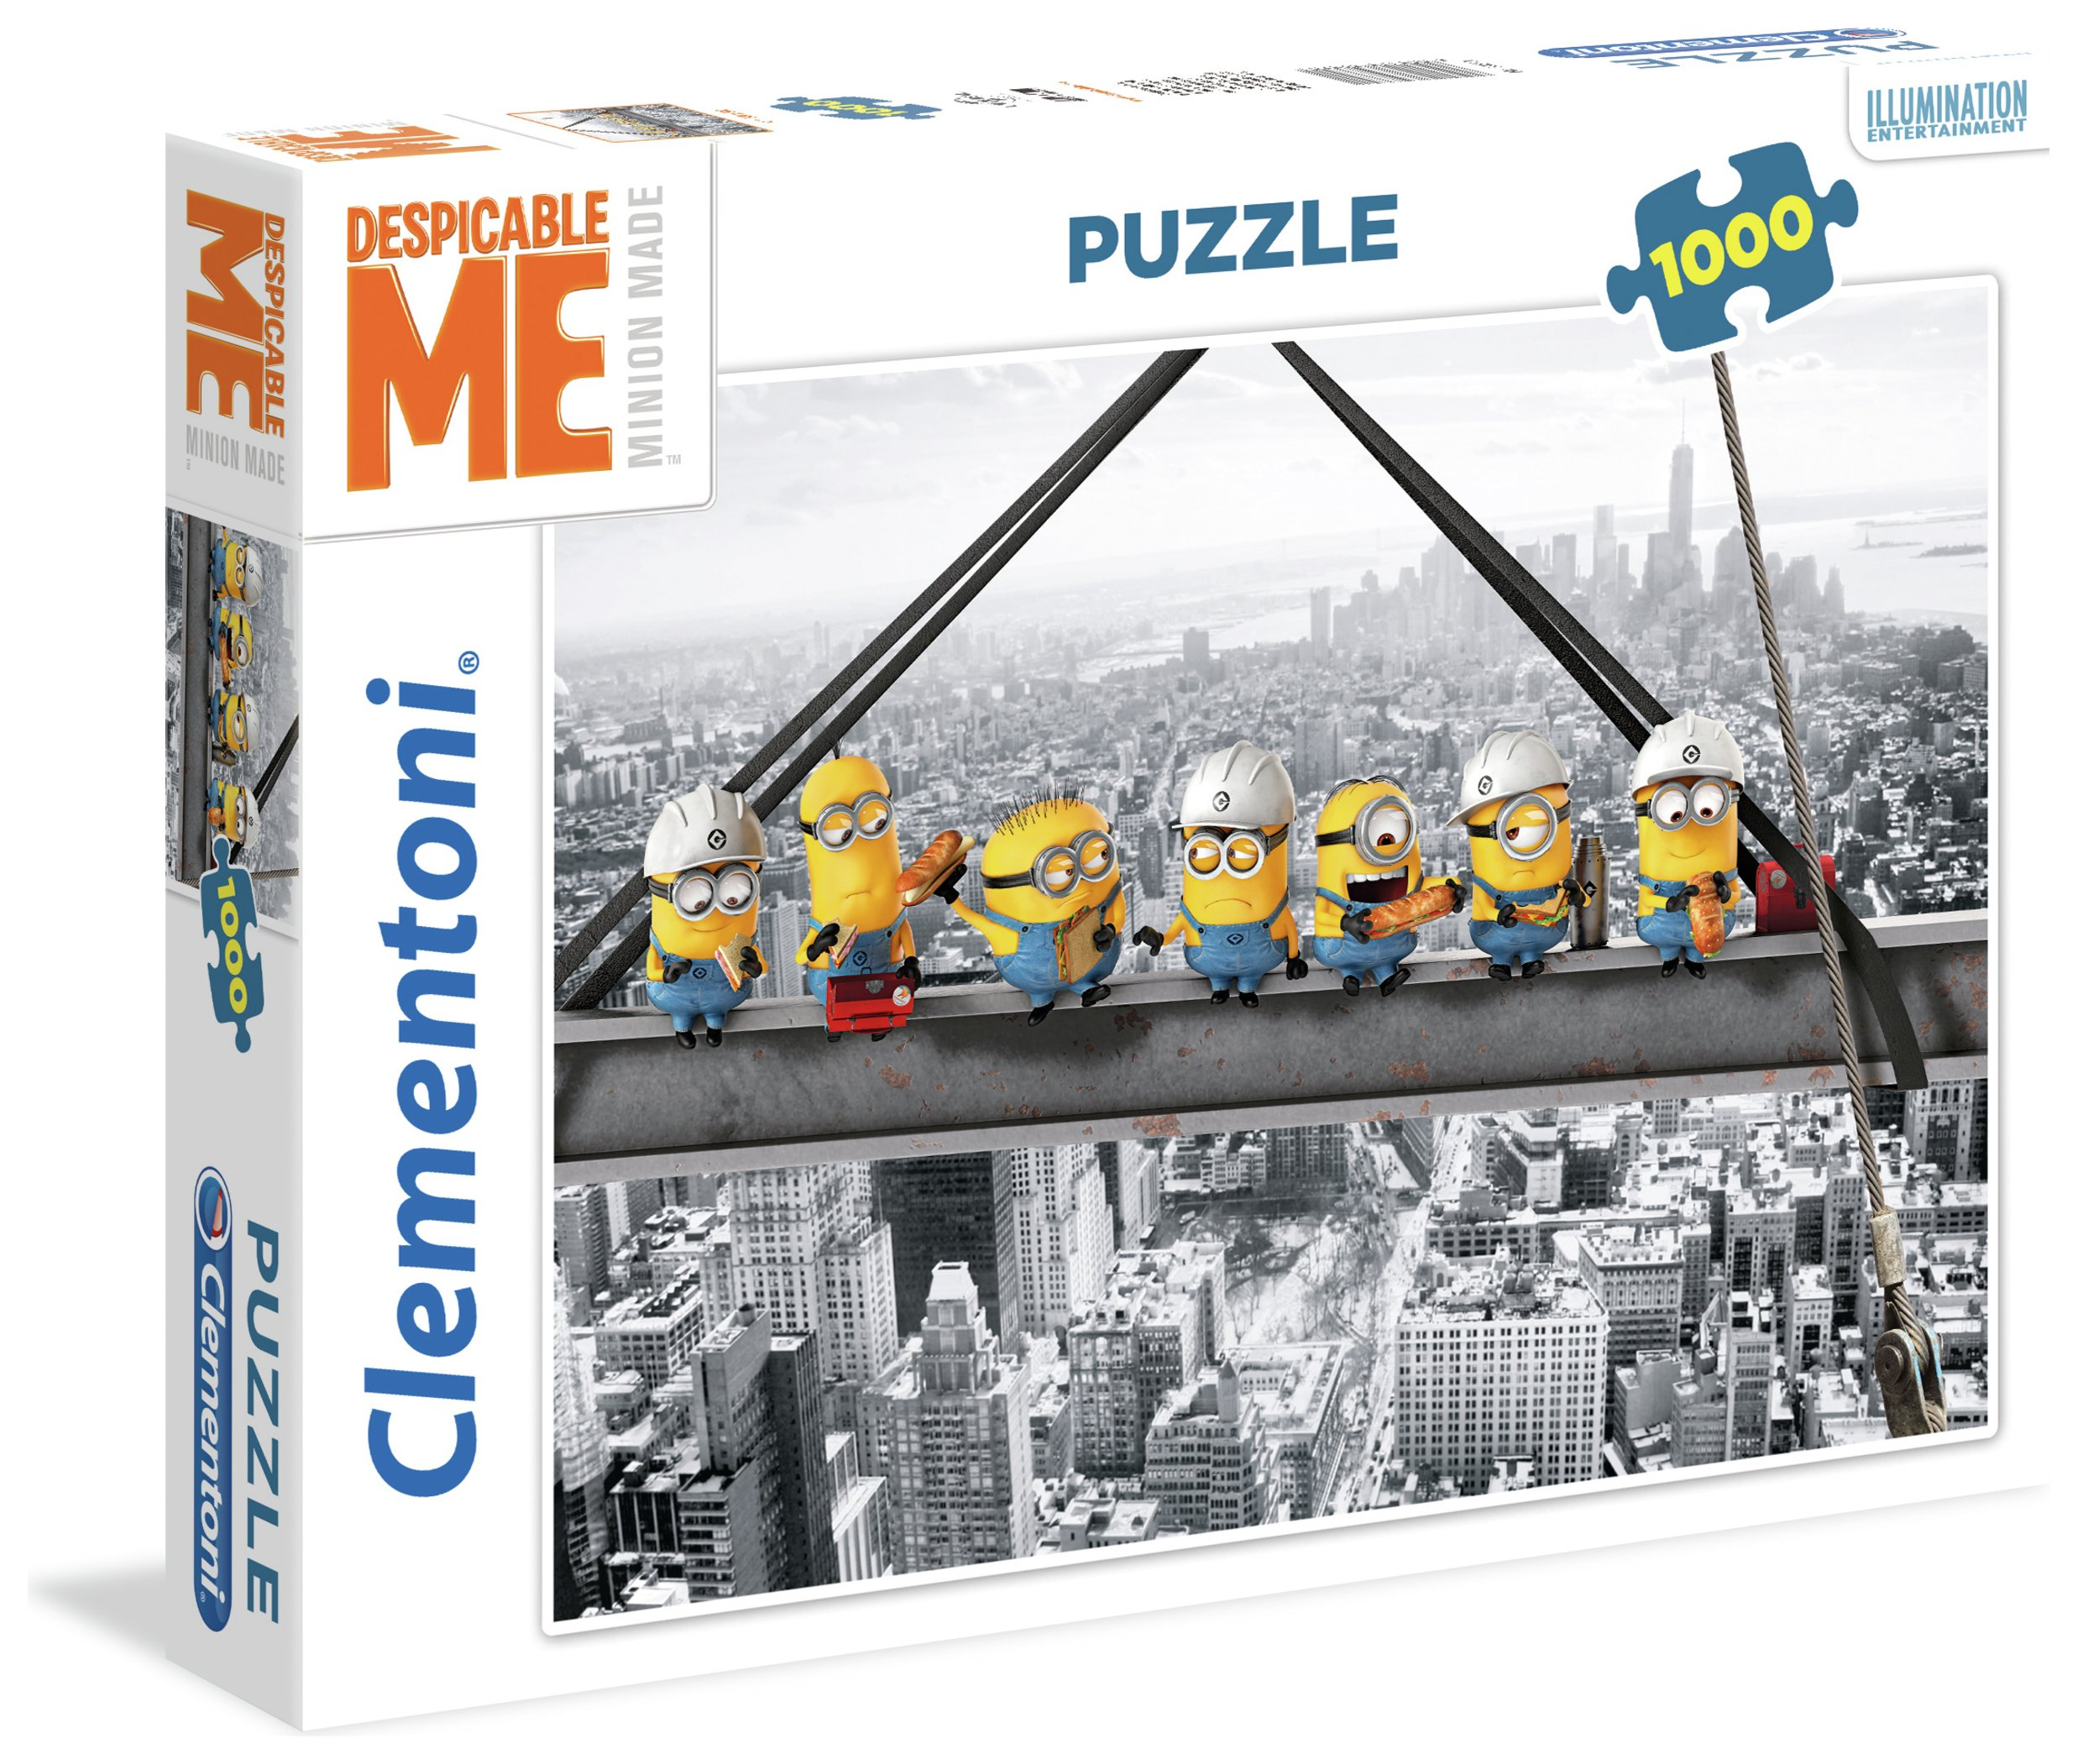 Image of Clementoni Despicable Me 3 1000 Puzzle - Skyscraper